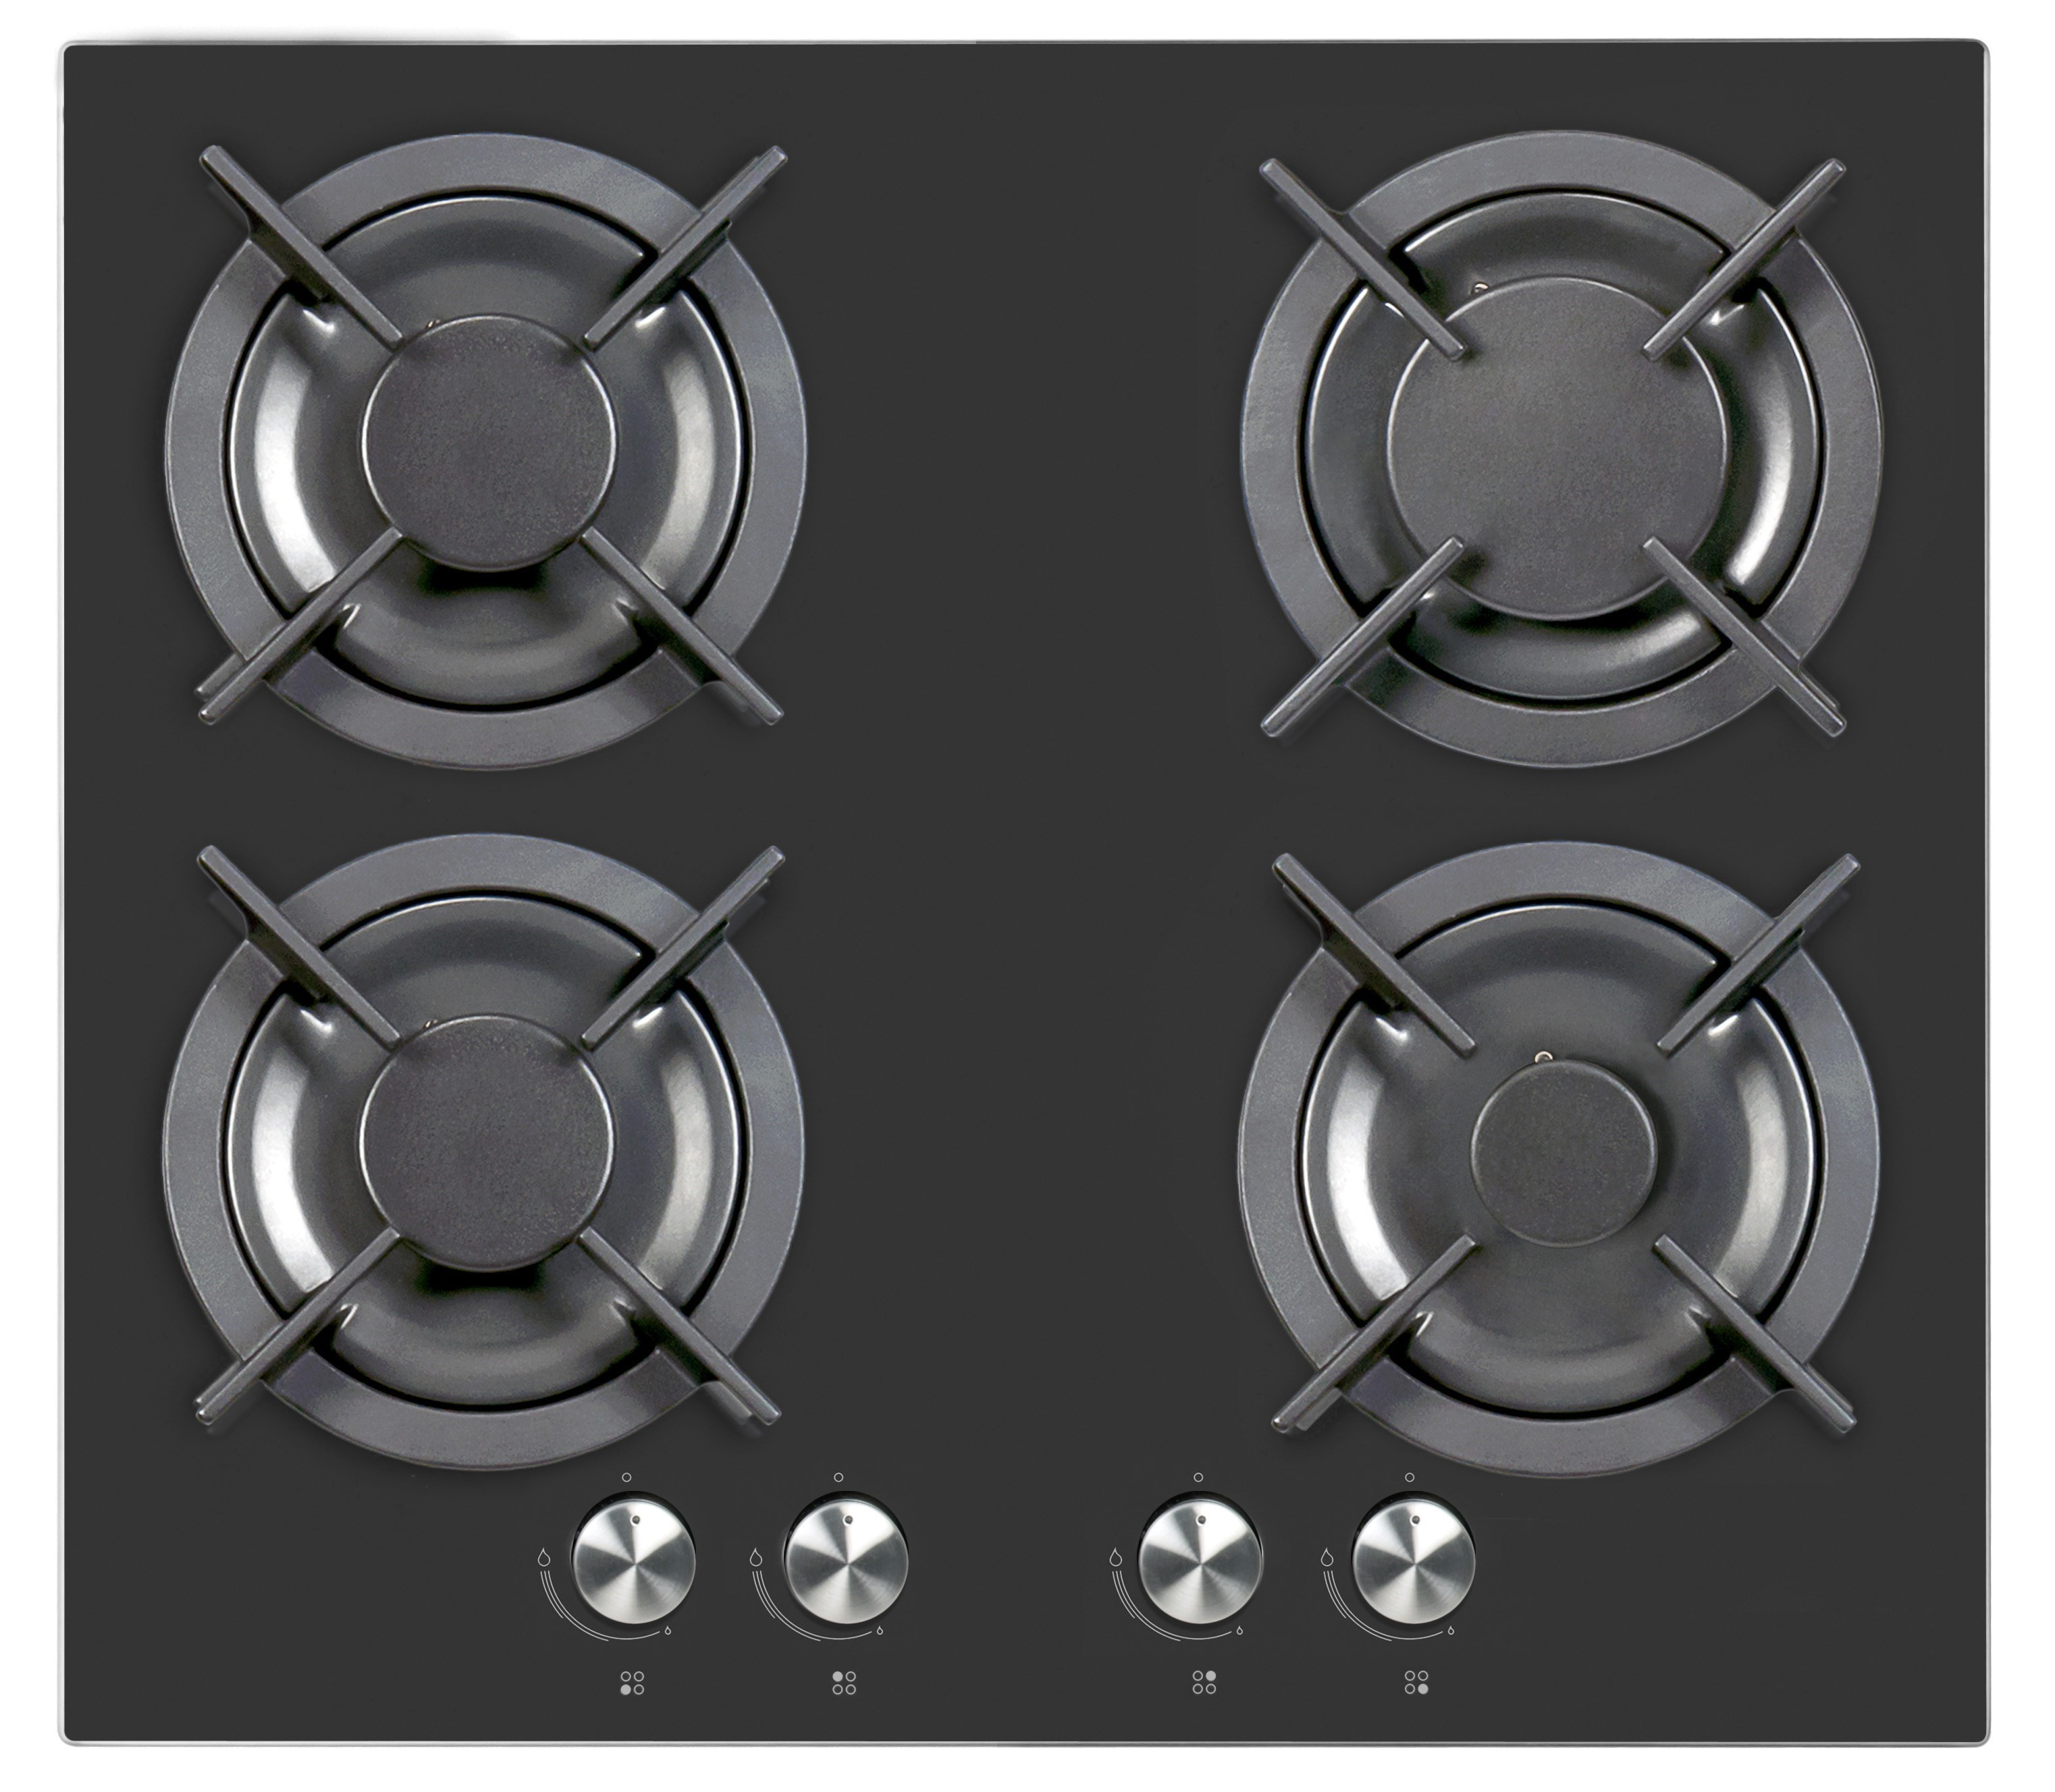 iq 60cm 4 burner gas on glass hob mirrored black glass iqgh602b appliances direct. Black Bedroom Furniture Sets. Home Design Ideas